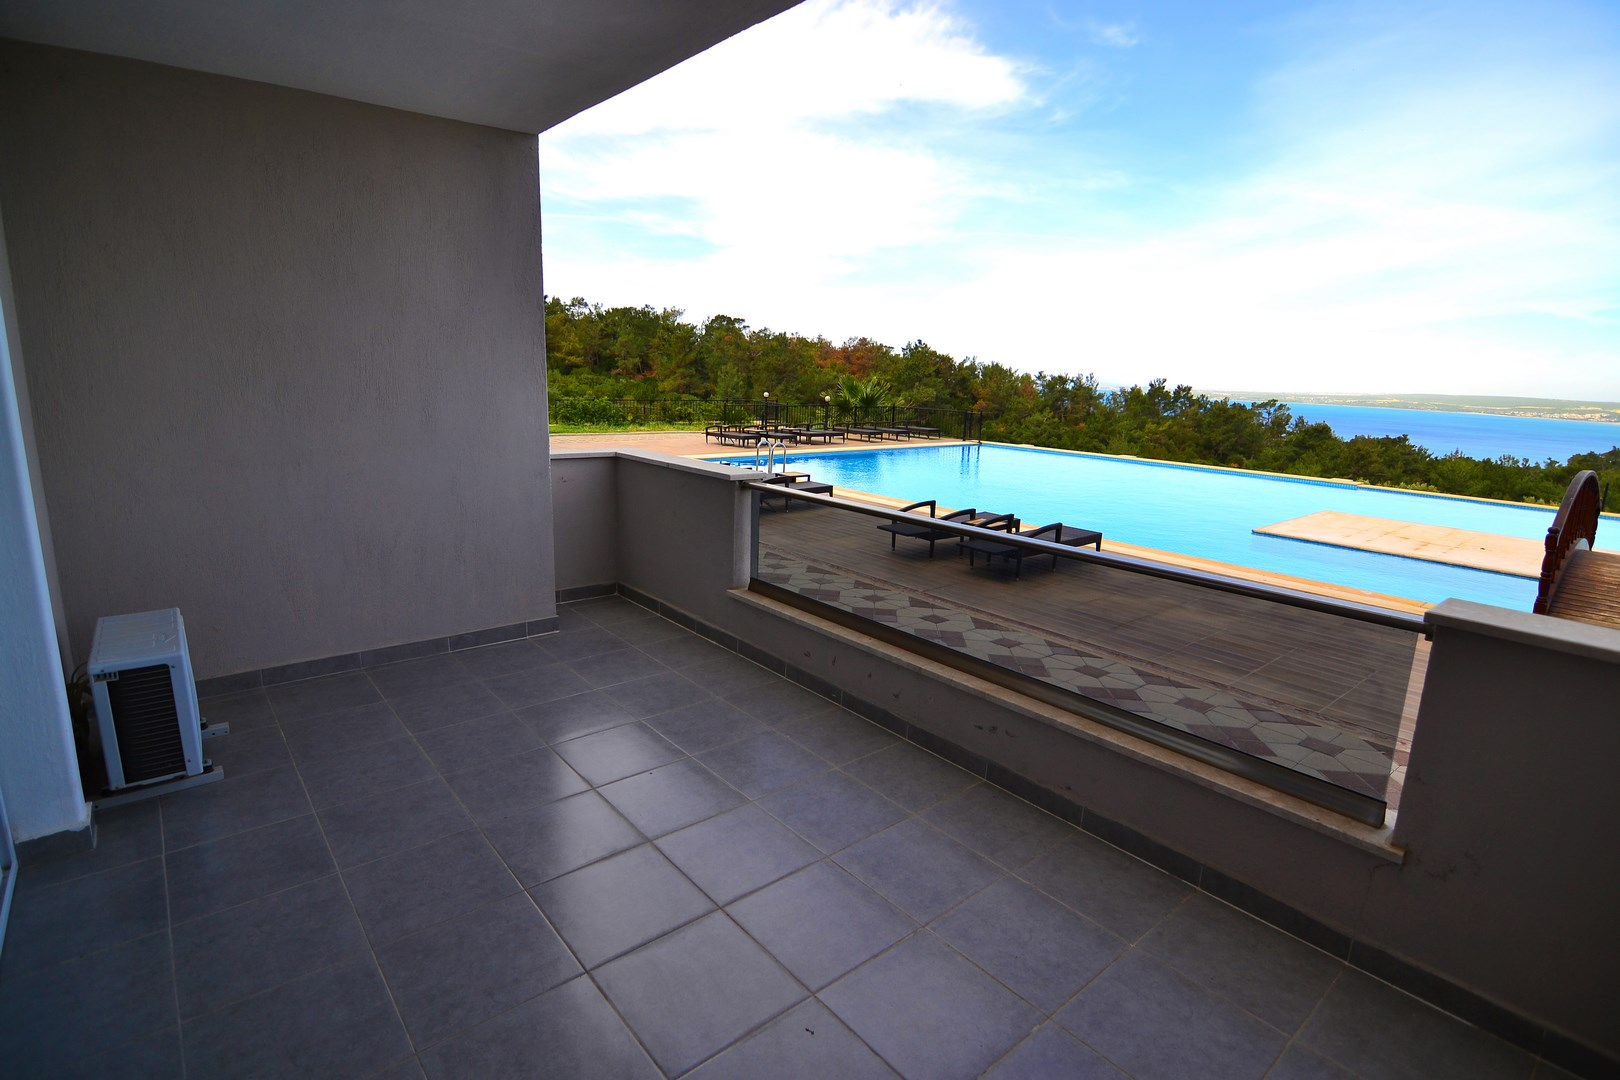 Tropicana Resort Akbuk 3 Bedroom Duplex For Sale